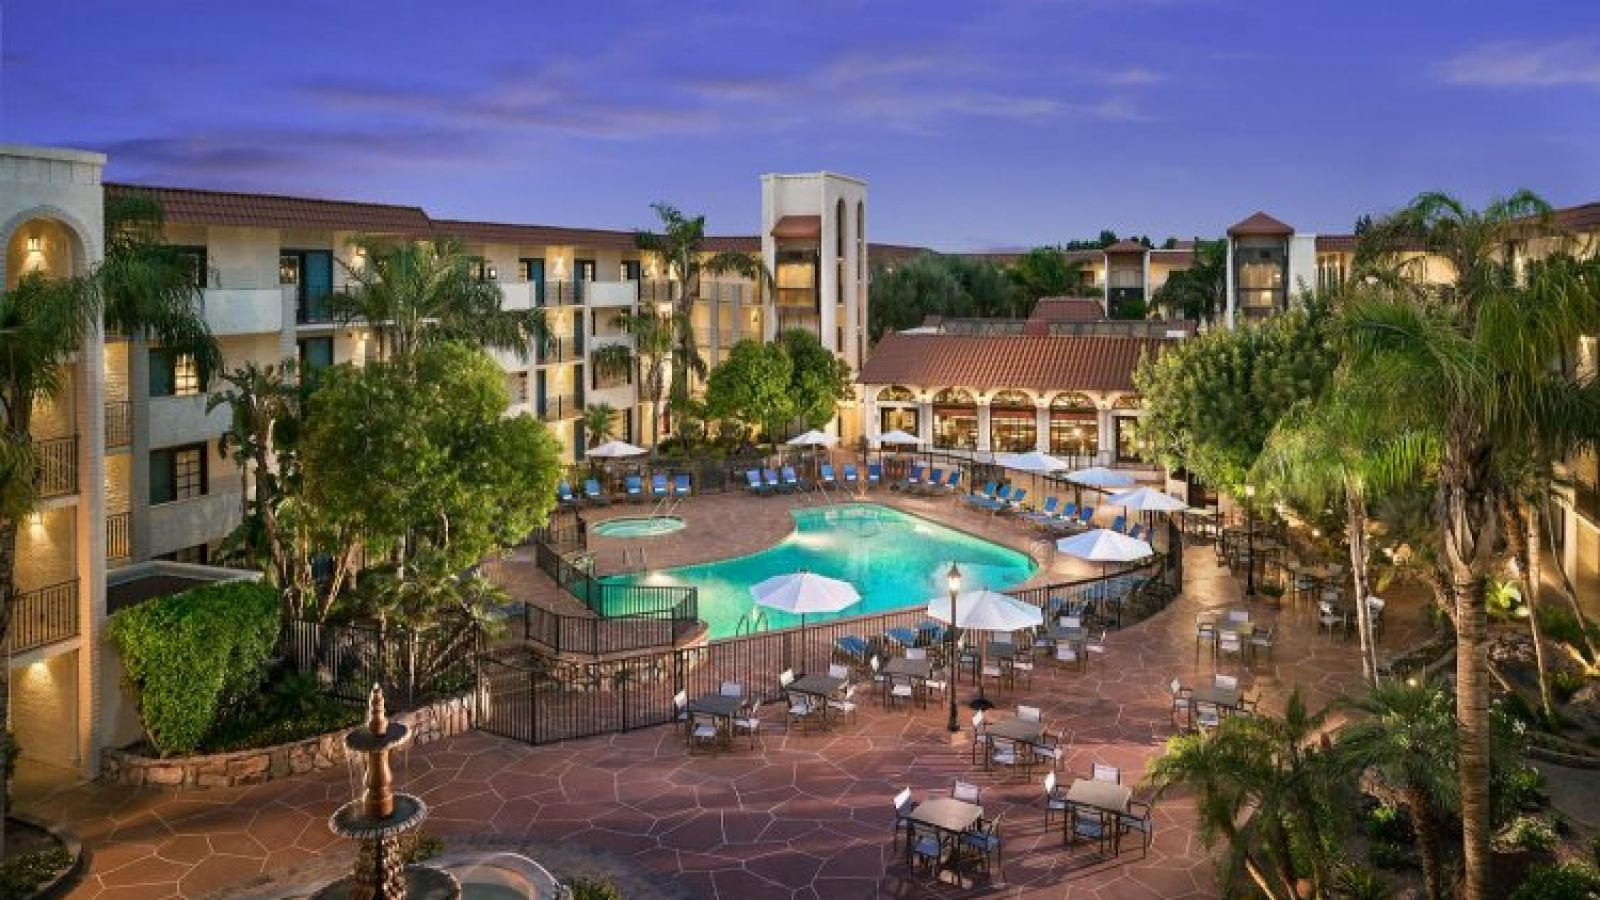 Embassy Suites by Hilton Scottsdale